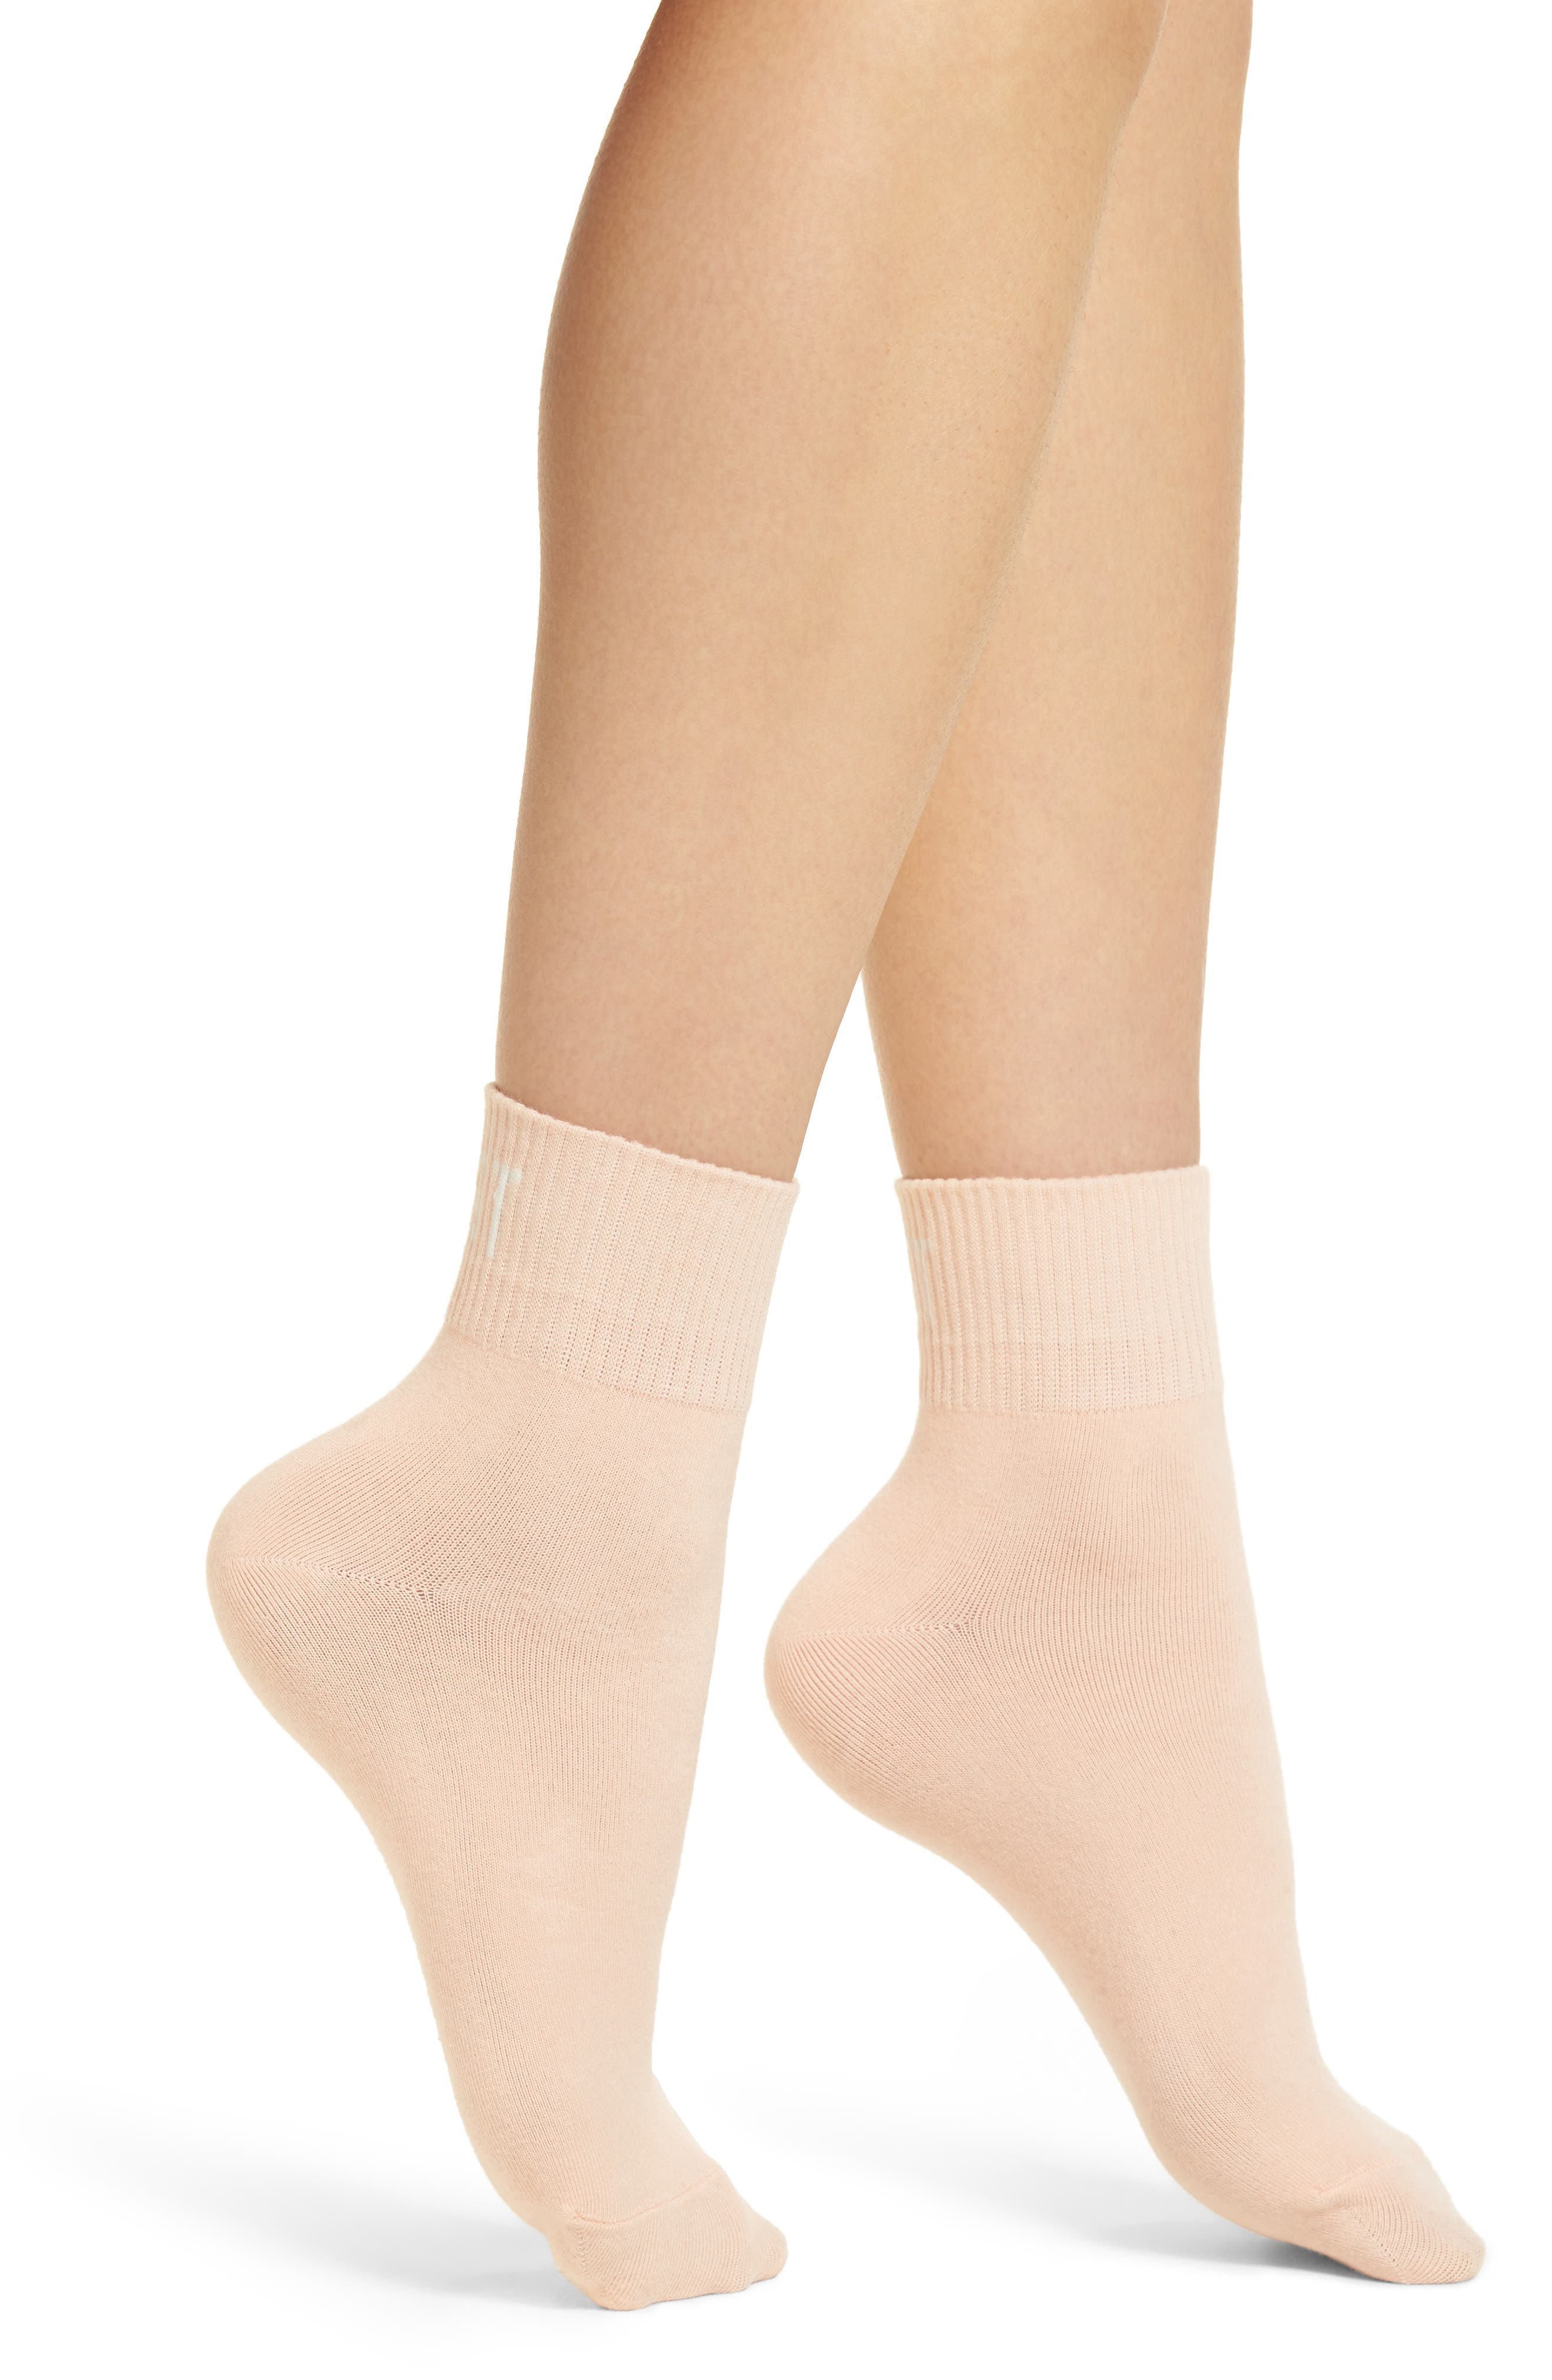 Get Lost Ankle Socks,                             Main thumbnail 1, color,                             630